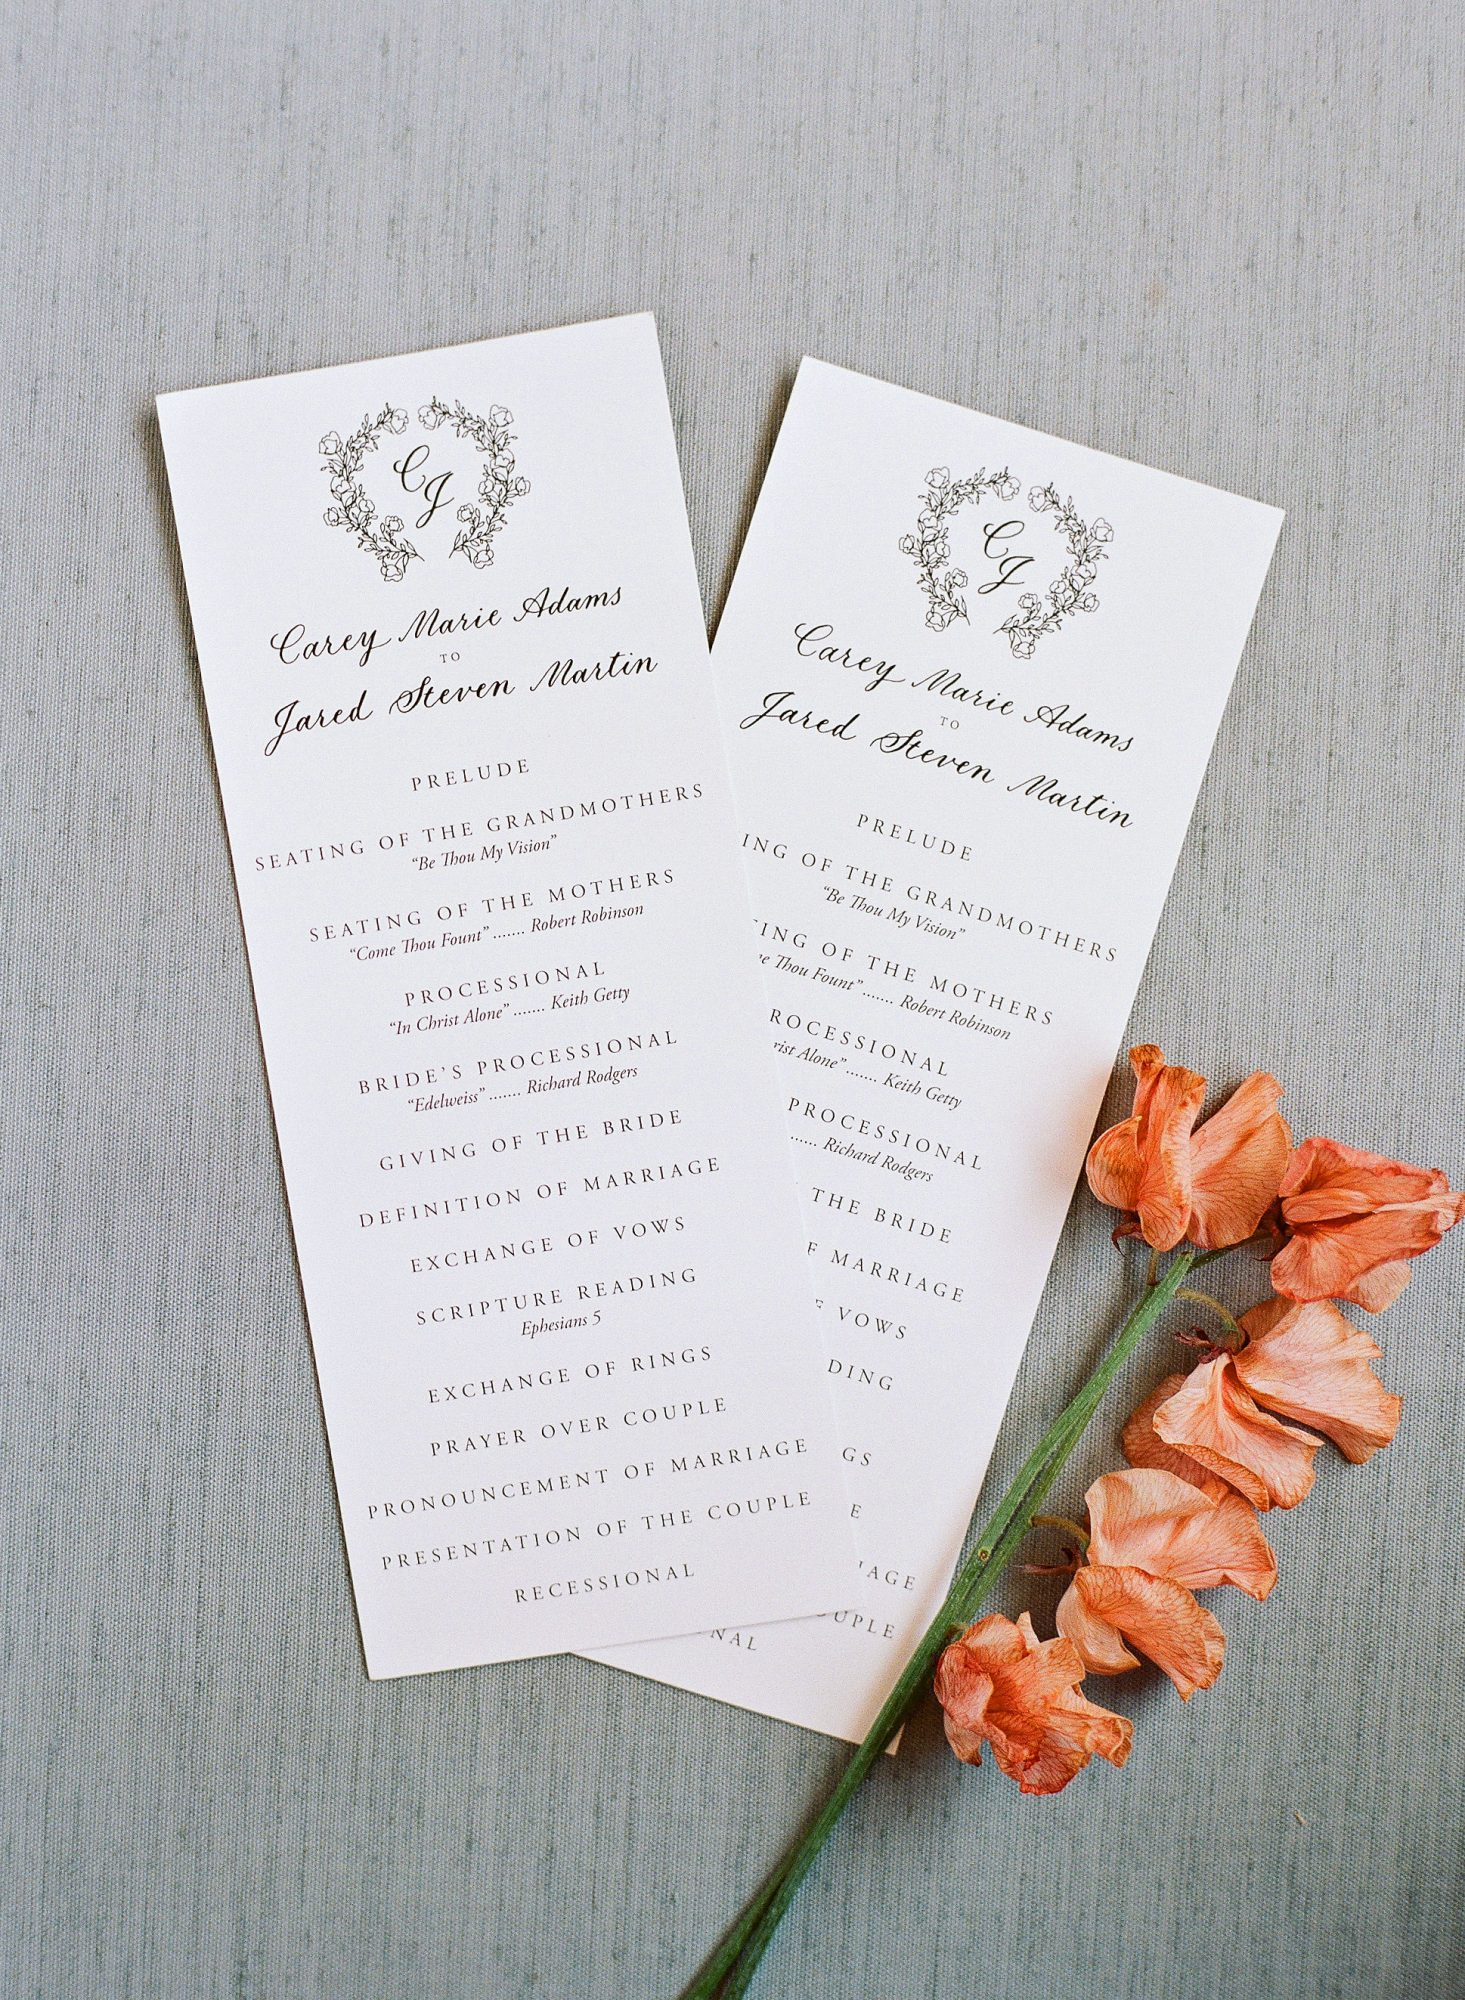 carey jared wedding programs